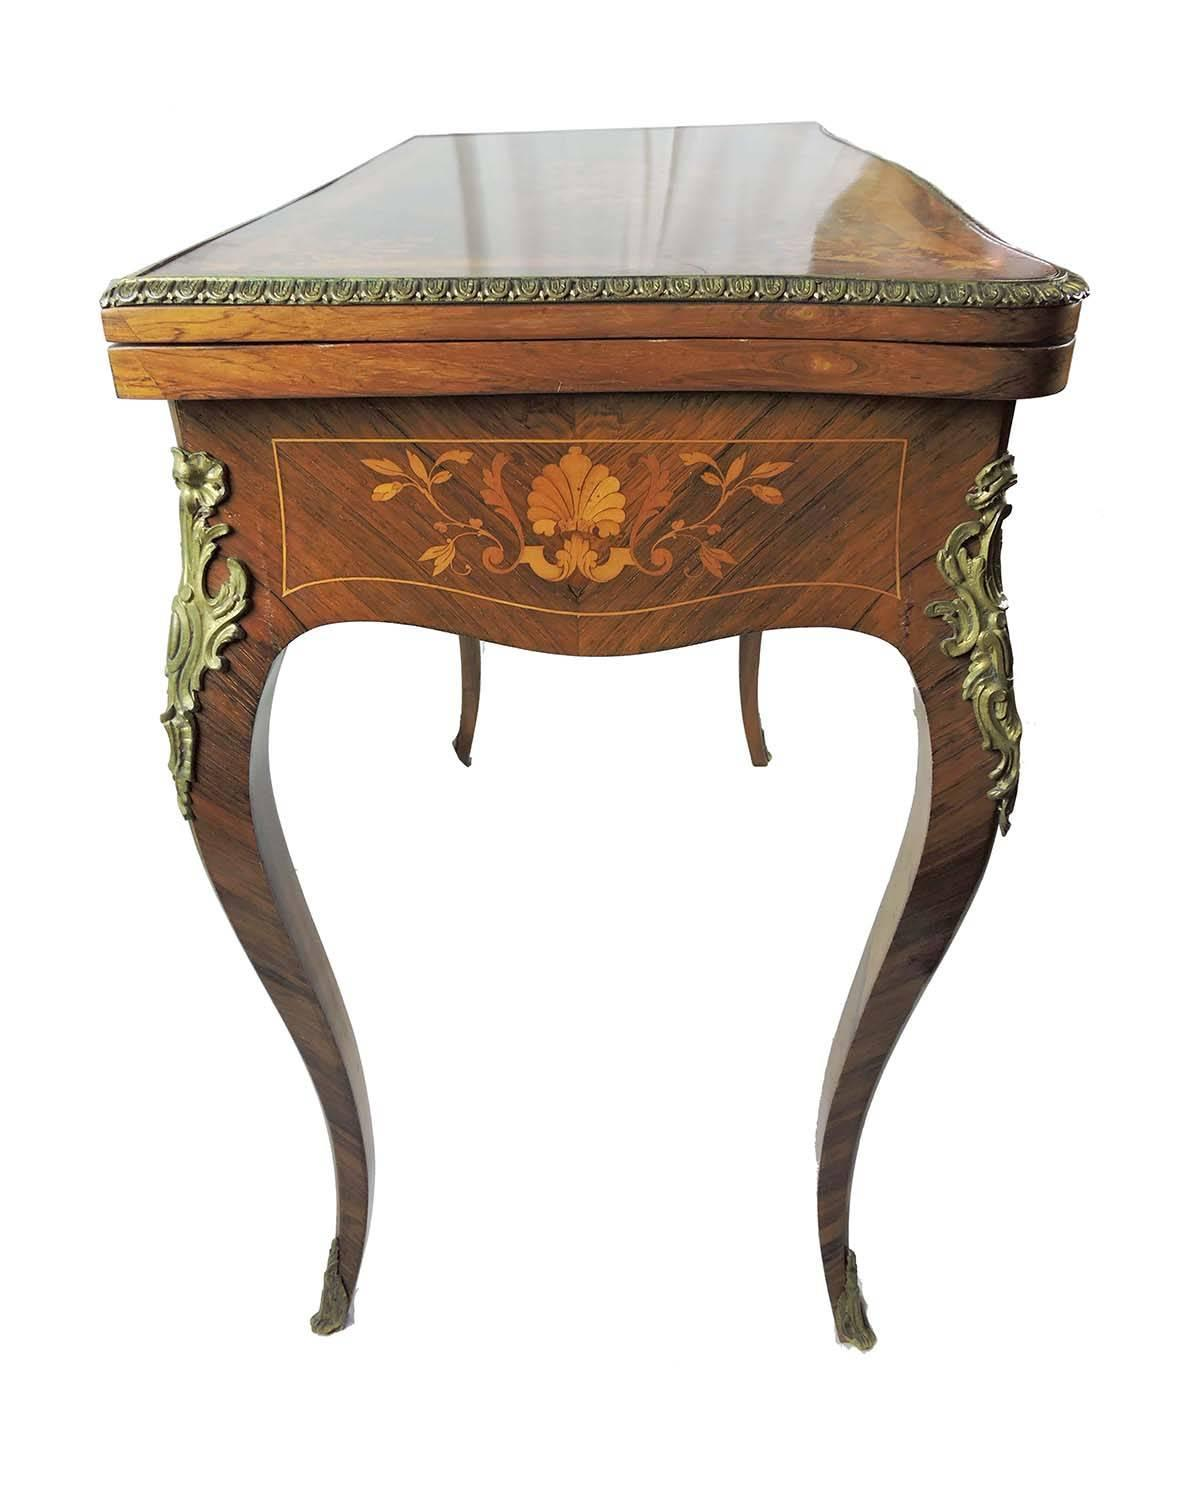 19th Century Louis Xv Style Marquetry Games Table With